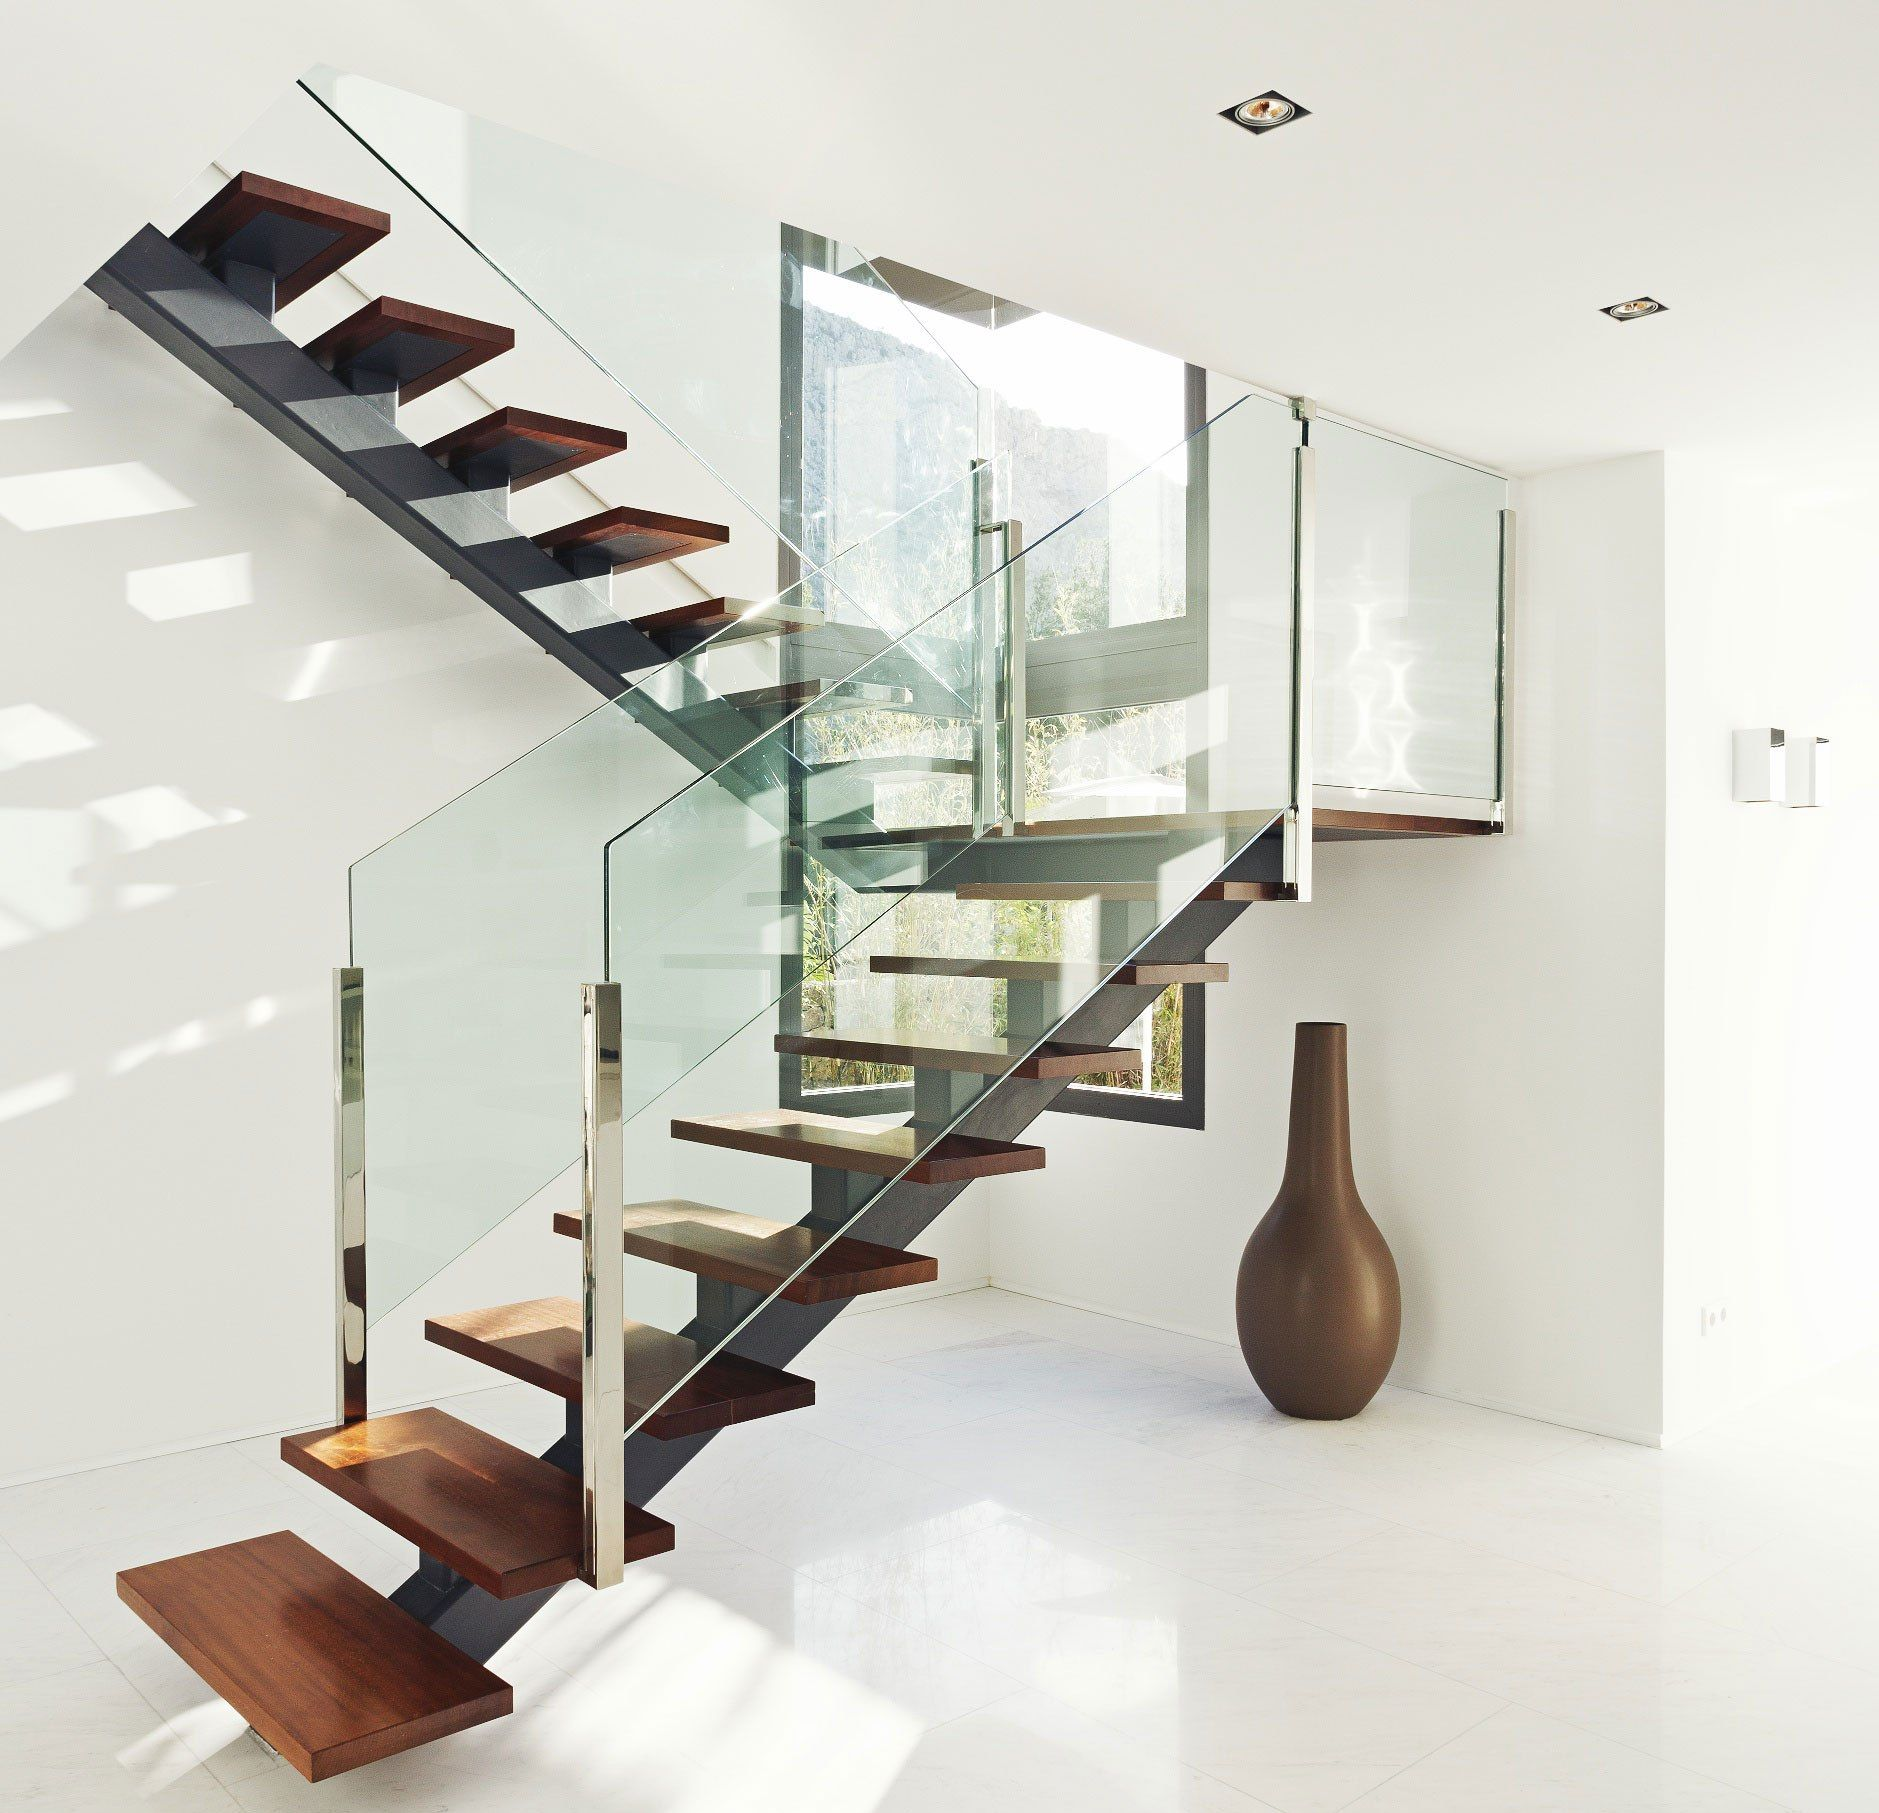 Glass Is Now The New In Fashion Material For Staircase Balustrades And Staircases Checkout 21 Beautiful Mod Contemporary Stairs Modern Staircase Stairs Design